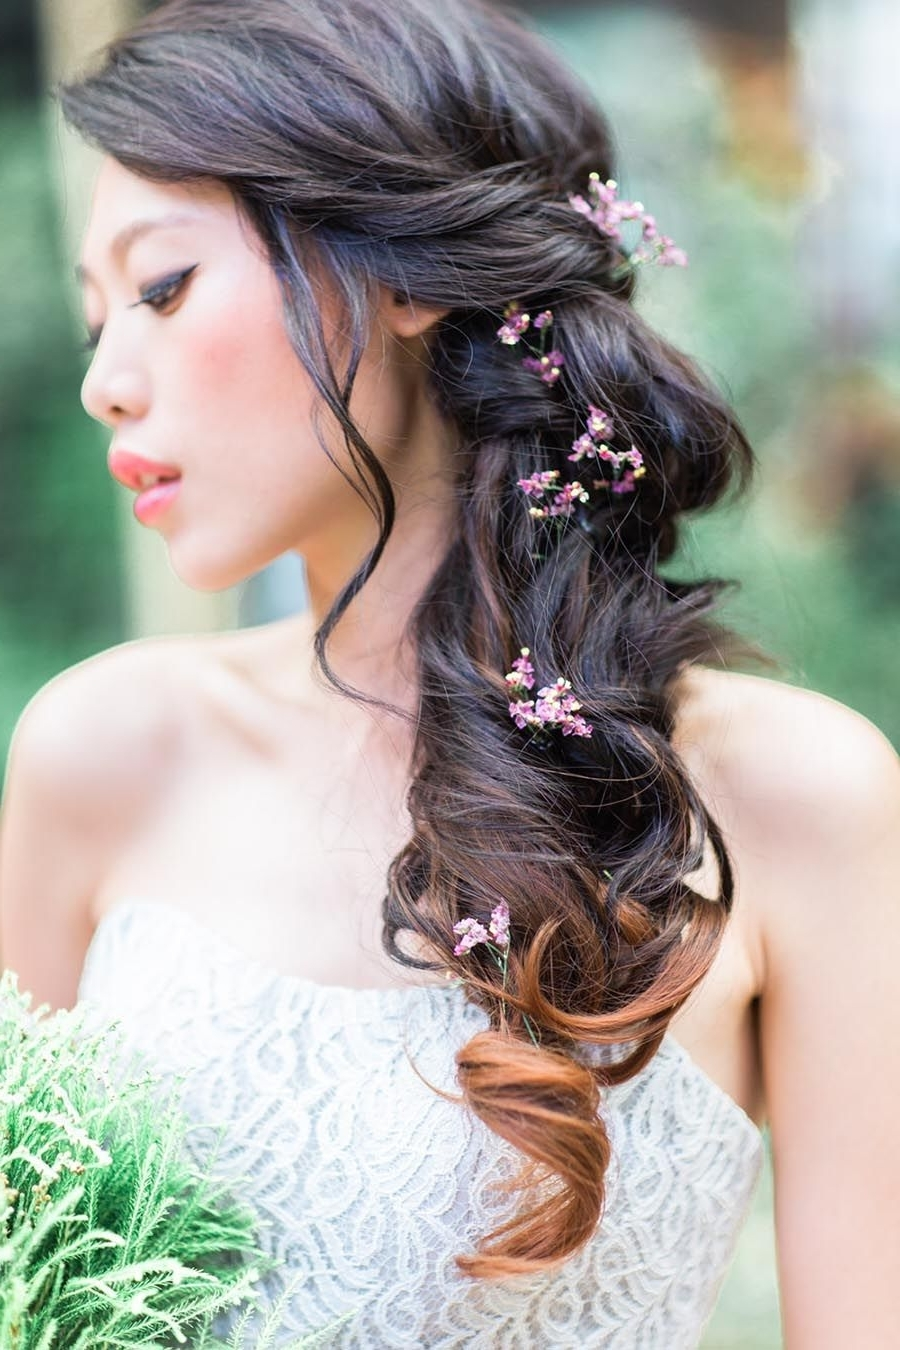 [%Famous Wedding Entourage Hairstyles Within Our Bridesmaids Collection – [Entourage] Styled Shoot In Conjunction|Our Bridesmaids Collection – [Entourage] Styled Shoot In Conjunction With Most Up To Date Wedding Entourage Hairstyles%] (View 1 of 15)